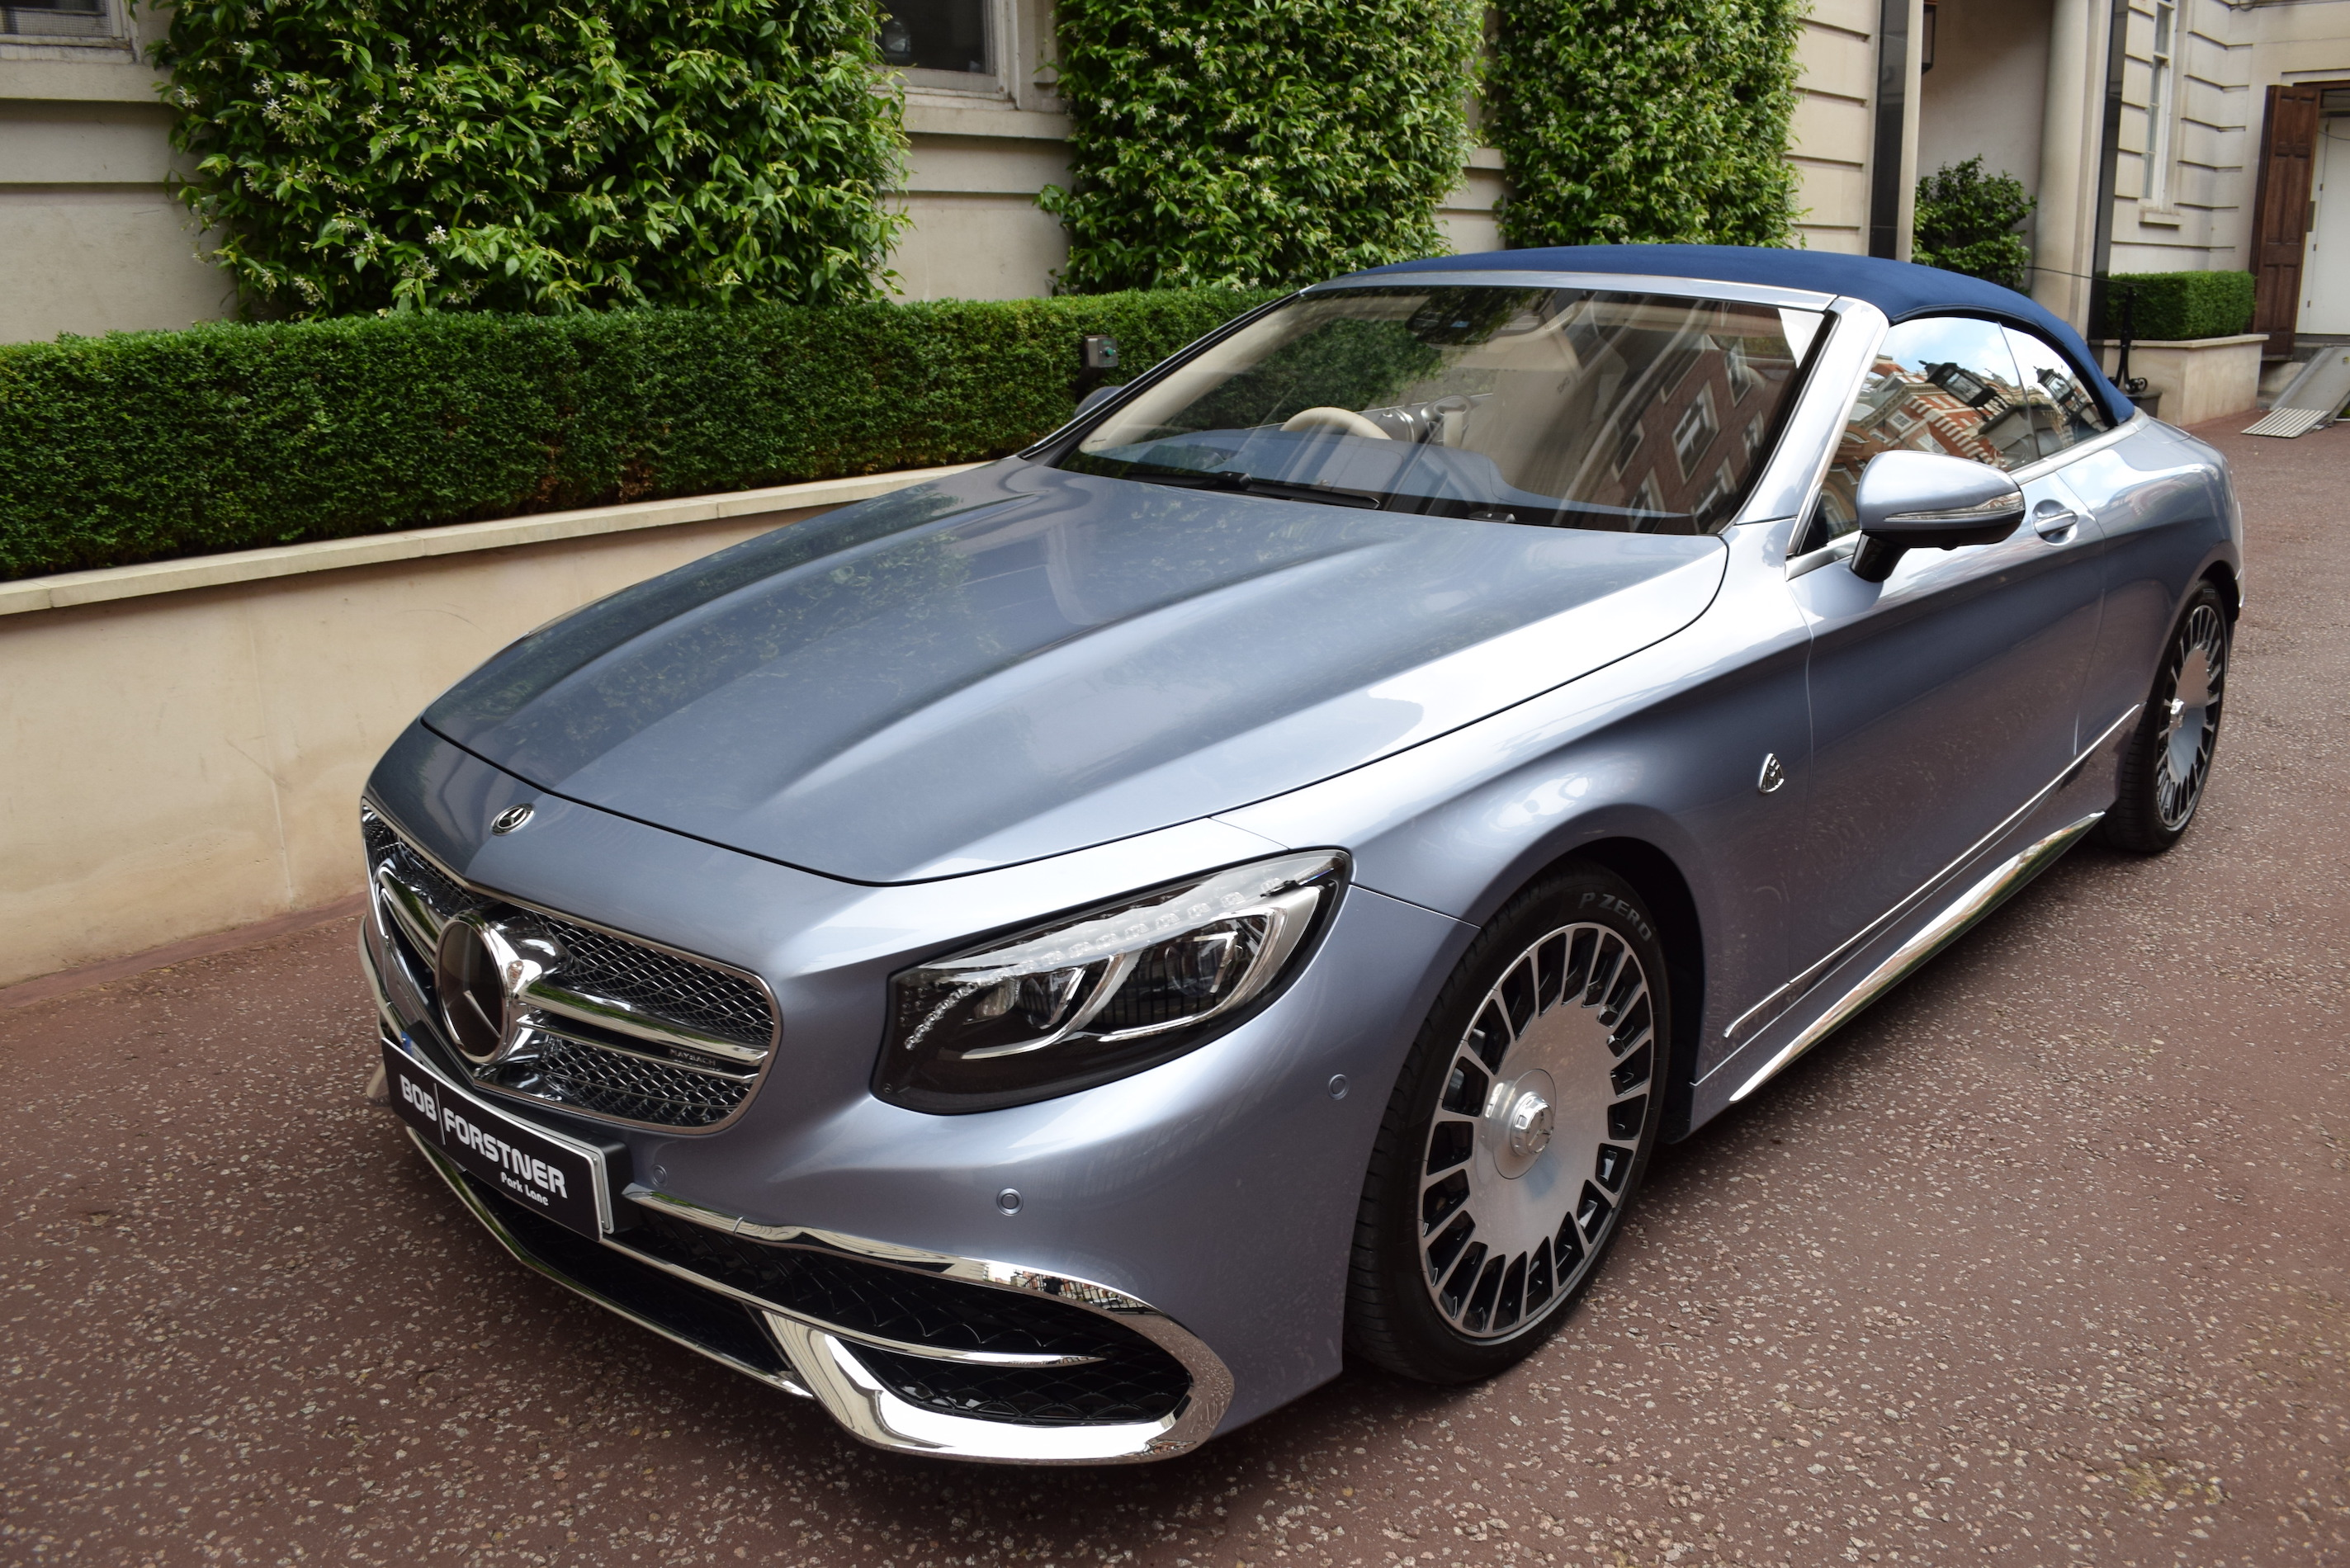 Maybach S650 Convertible (RHD) – 1 of 300 – Light Côte d'Azur Blue